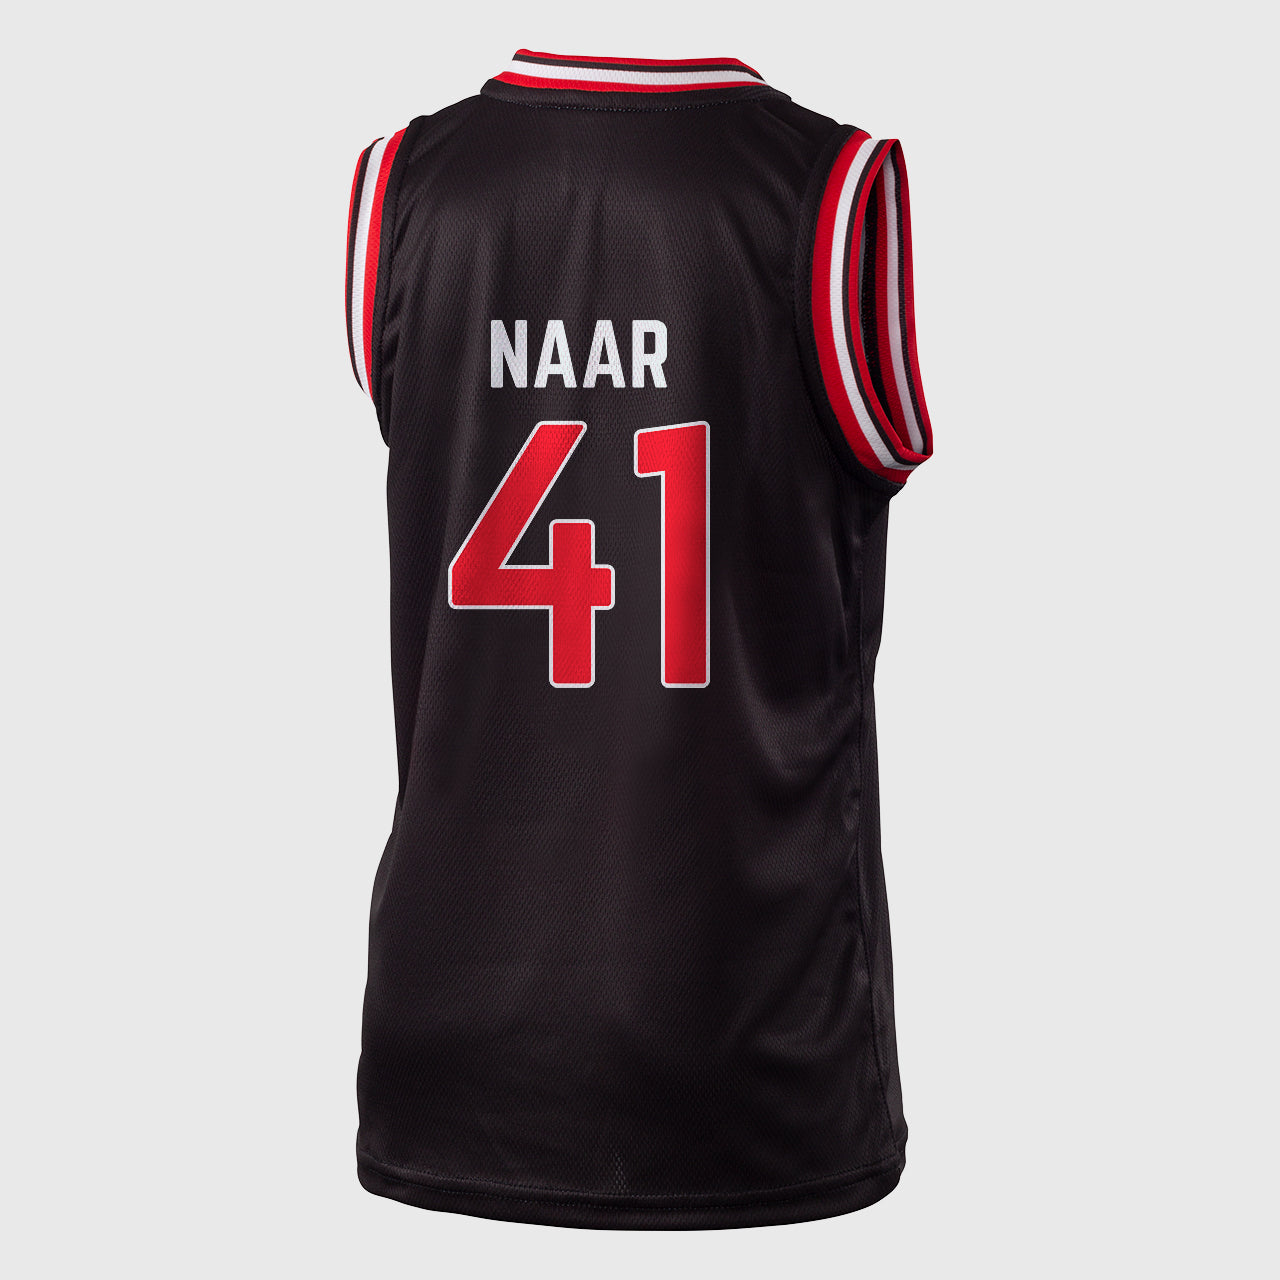 Illawarra Hawks 18/19 Youth Authentic Jersey - Emmett Naar